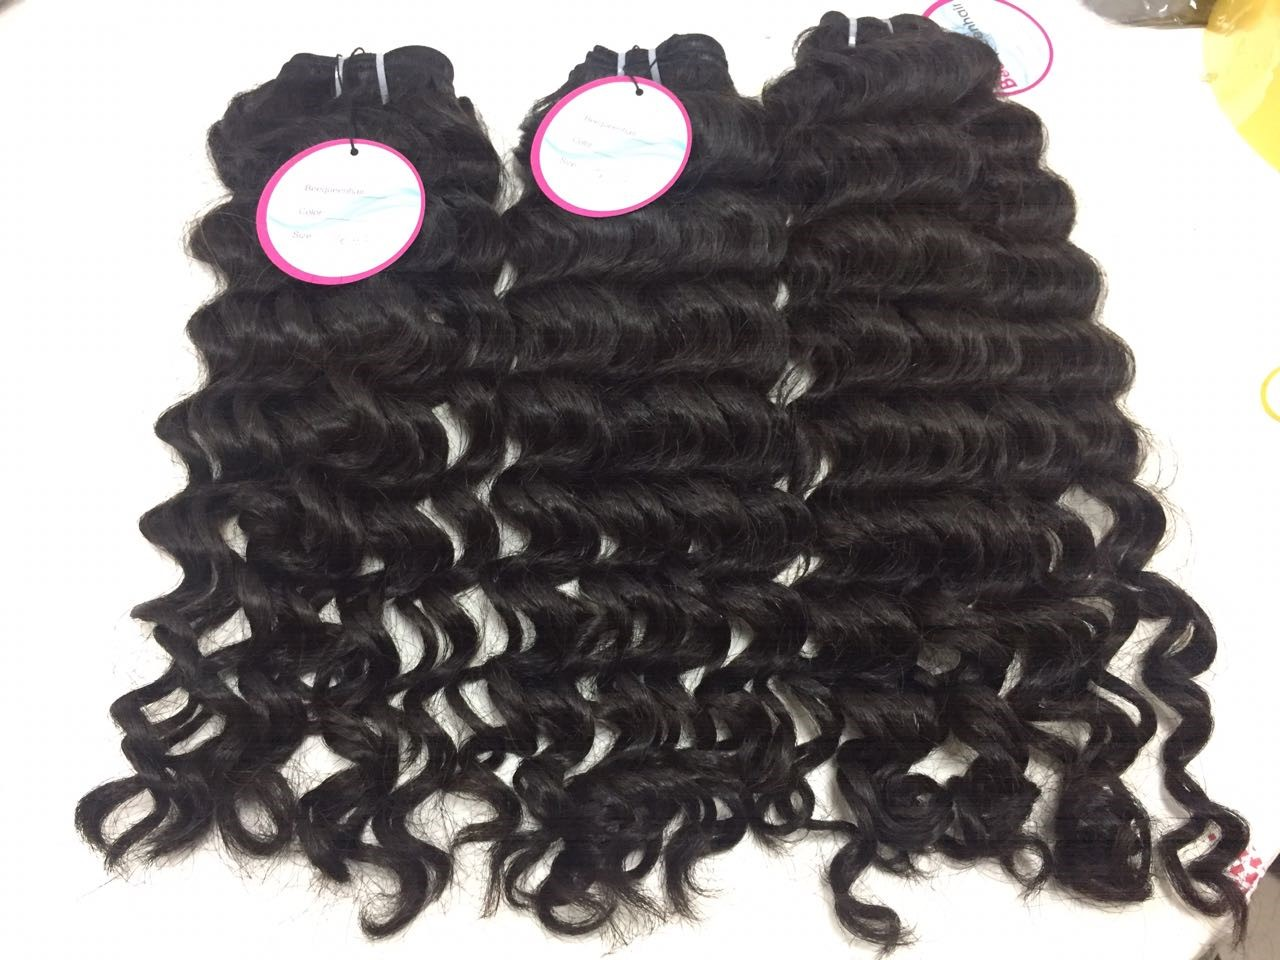 30 Inches Weave Human Hair Extensions